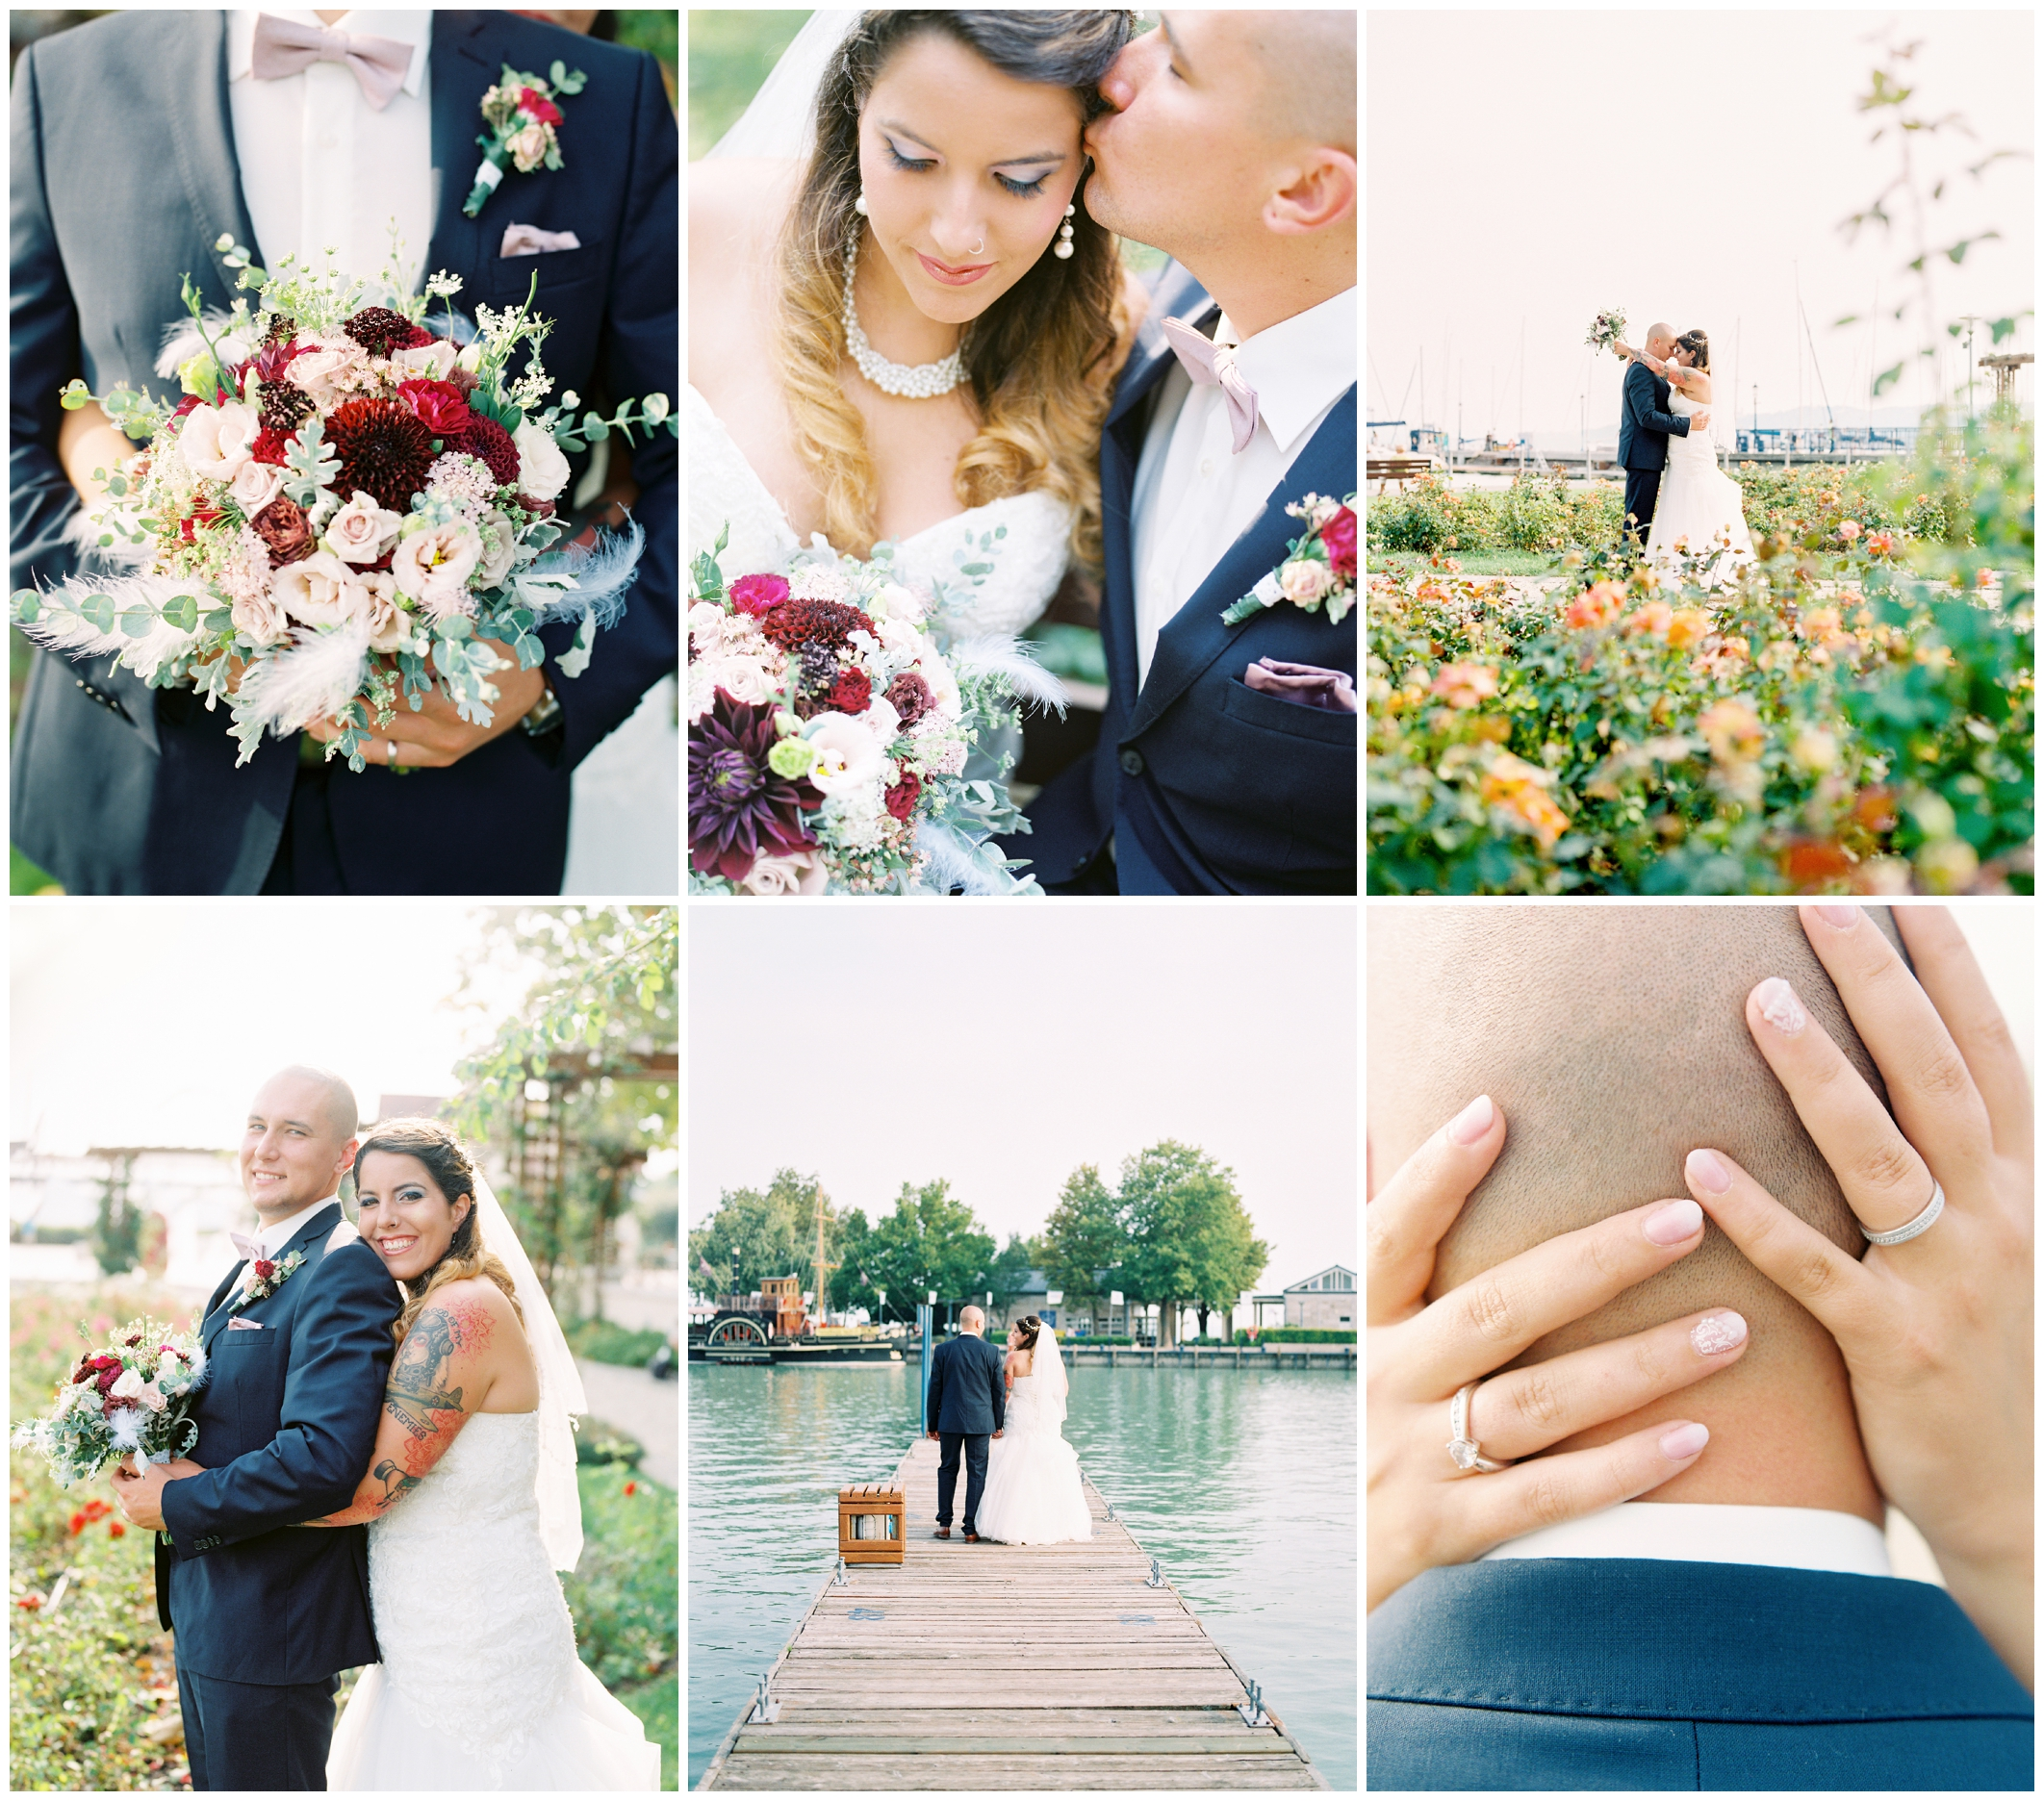 Barbara and Attila's Wedding | Lake Balaton, Hungary